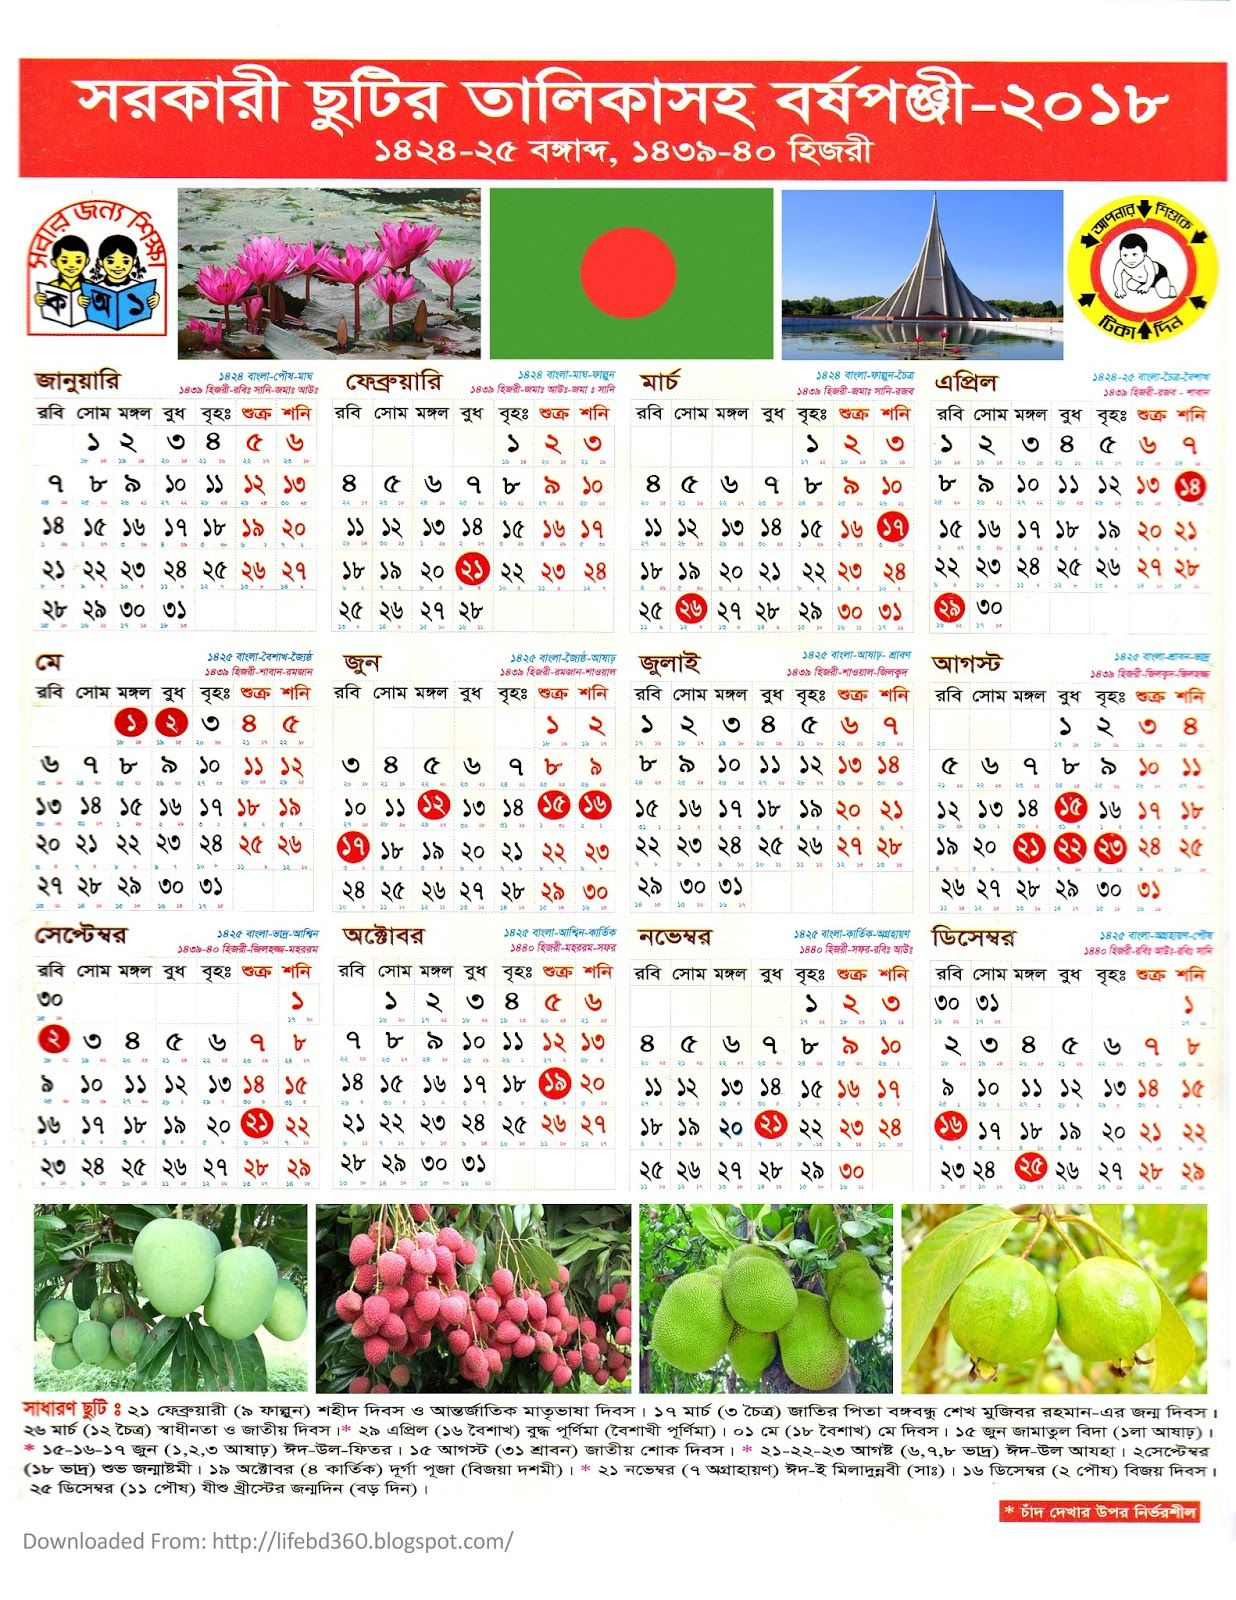 download printable pdf of bangladesh government holiday calendar 2018